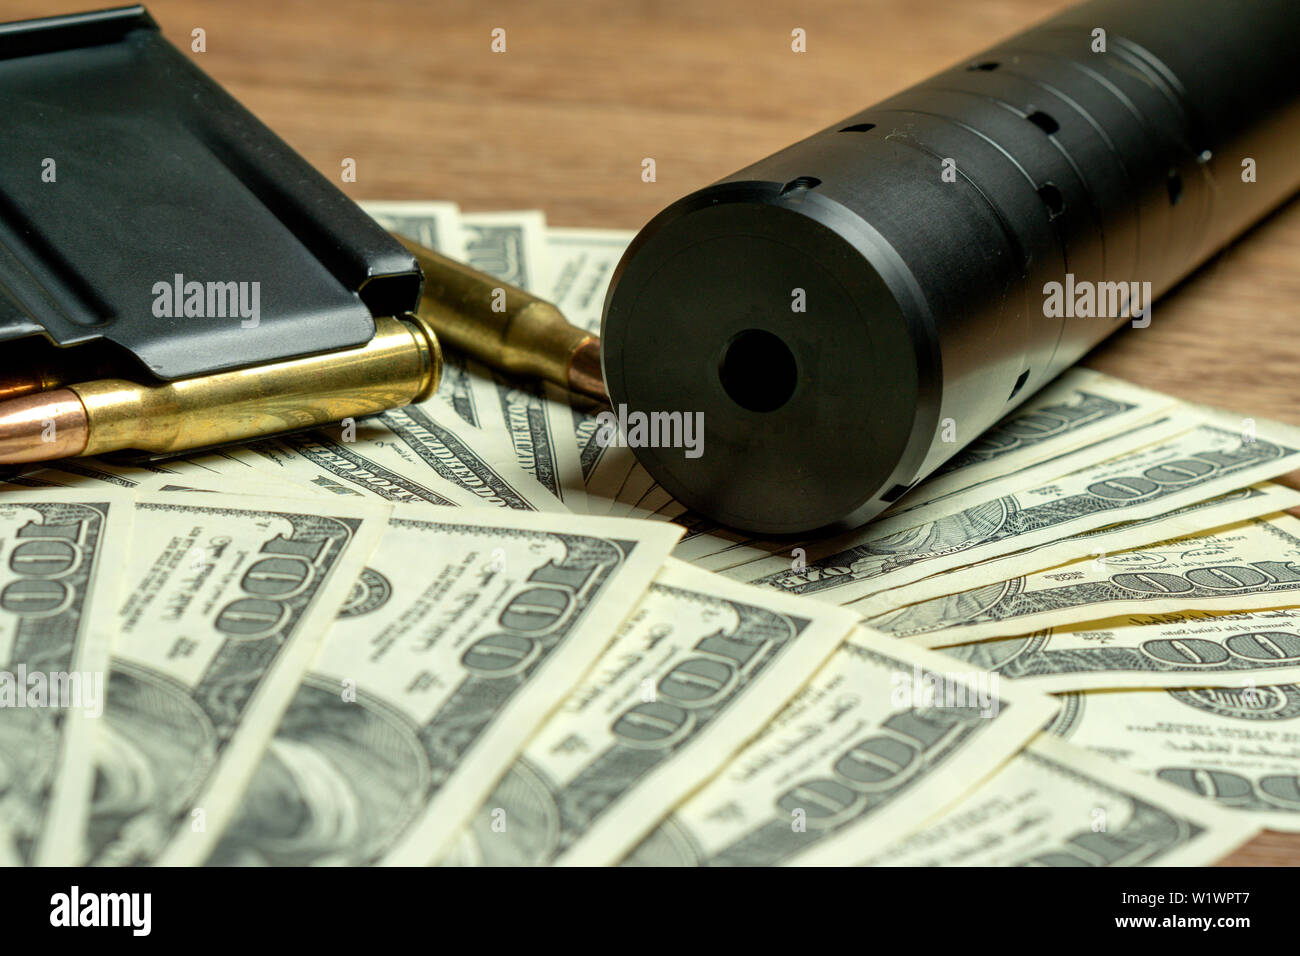 Rifle barrel, suppressor and cartridges on money. Concept for crime, contract killing, paid assassin, terrorism, war, global arms trade, weapons sale - Stock Image